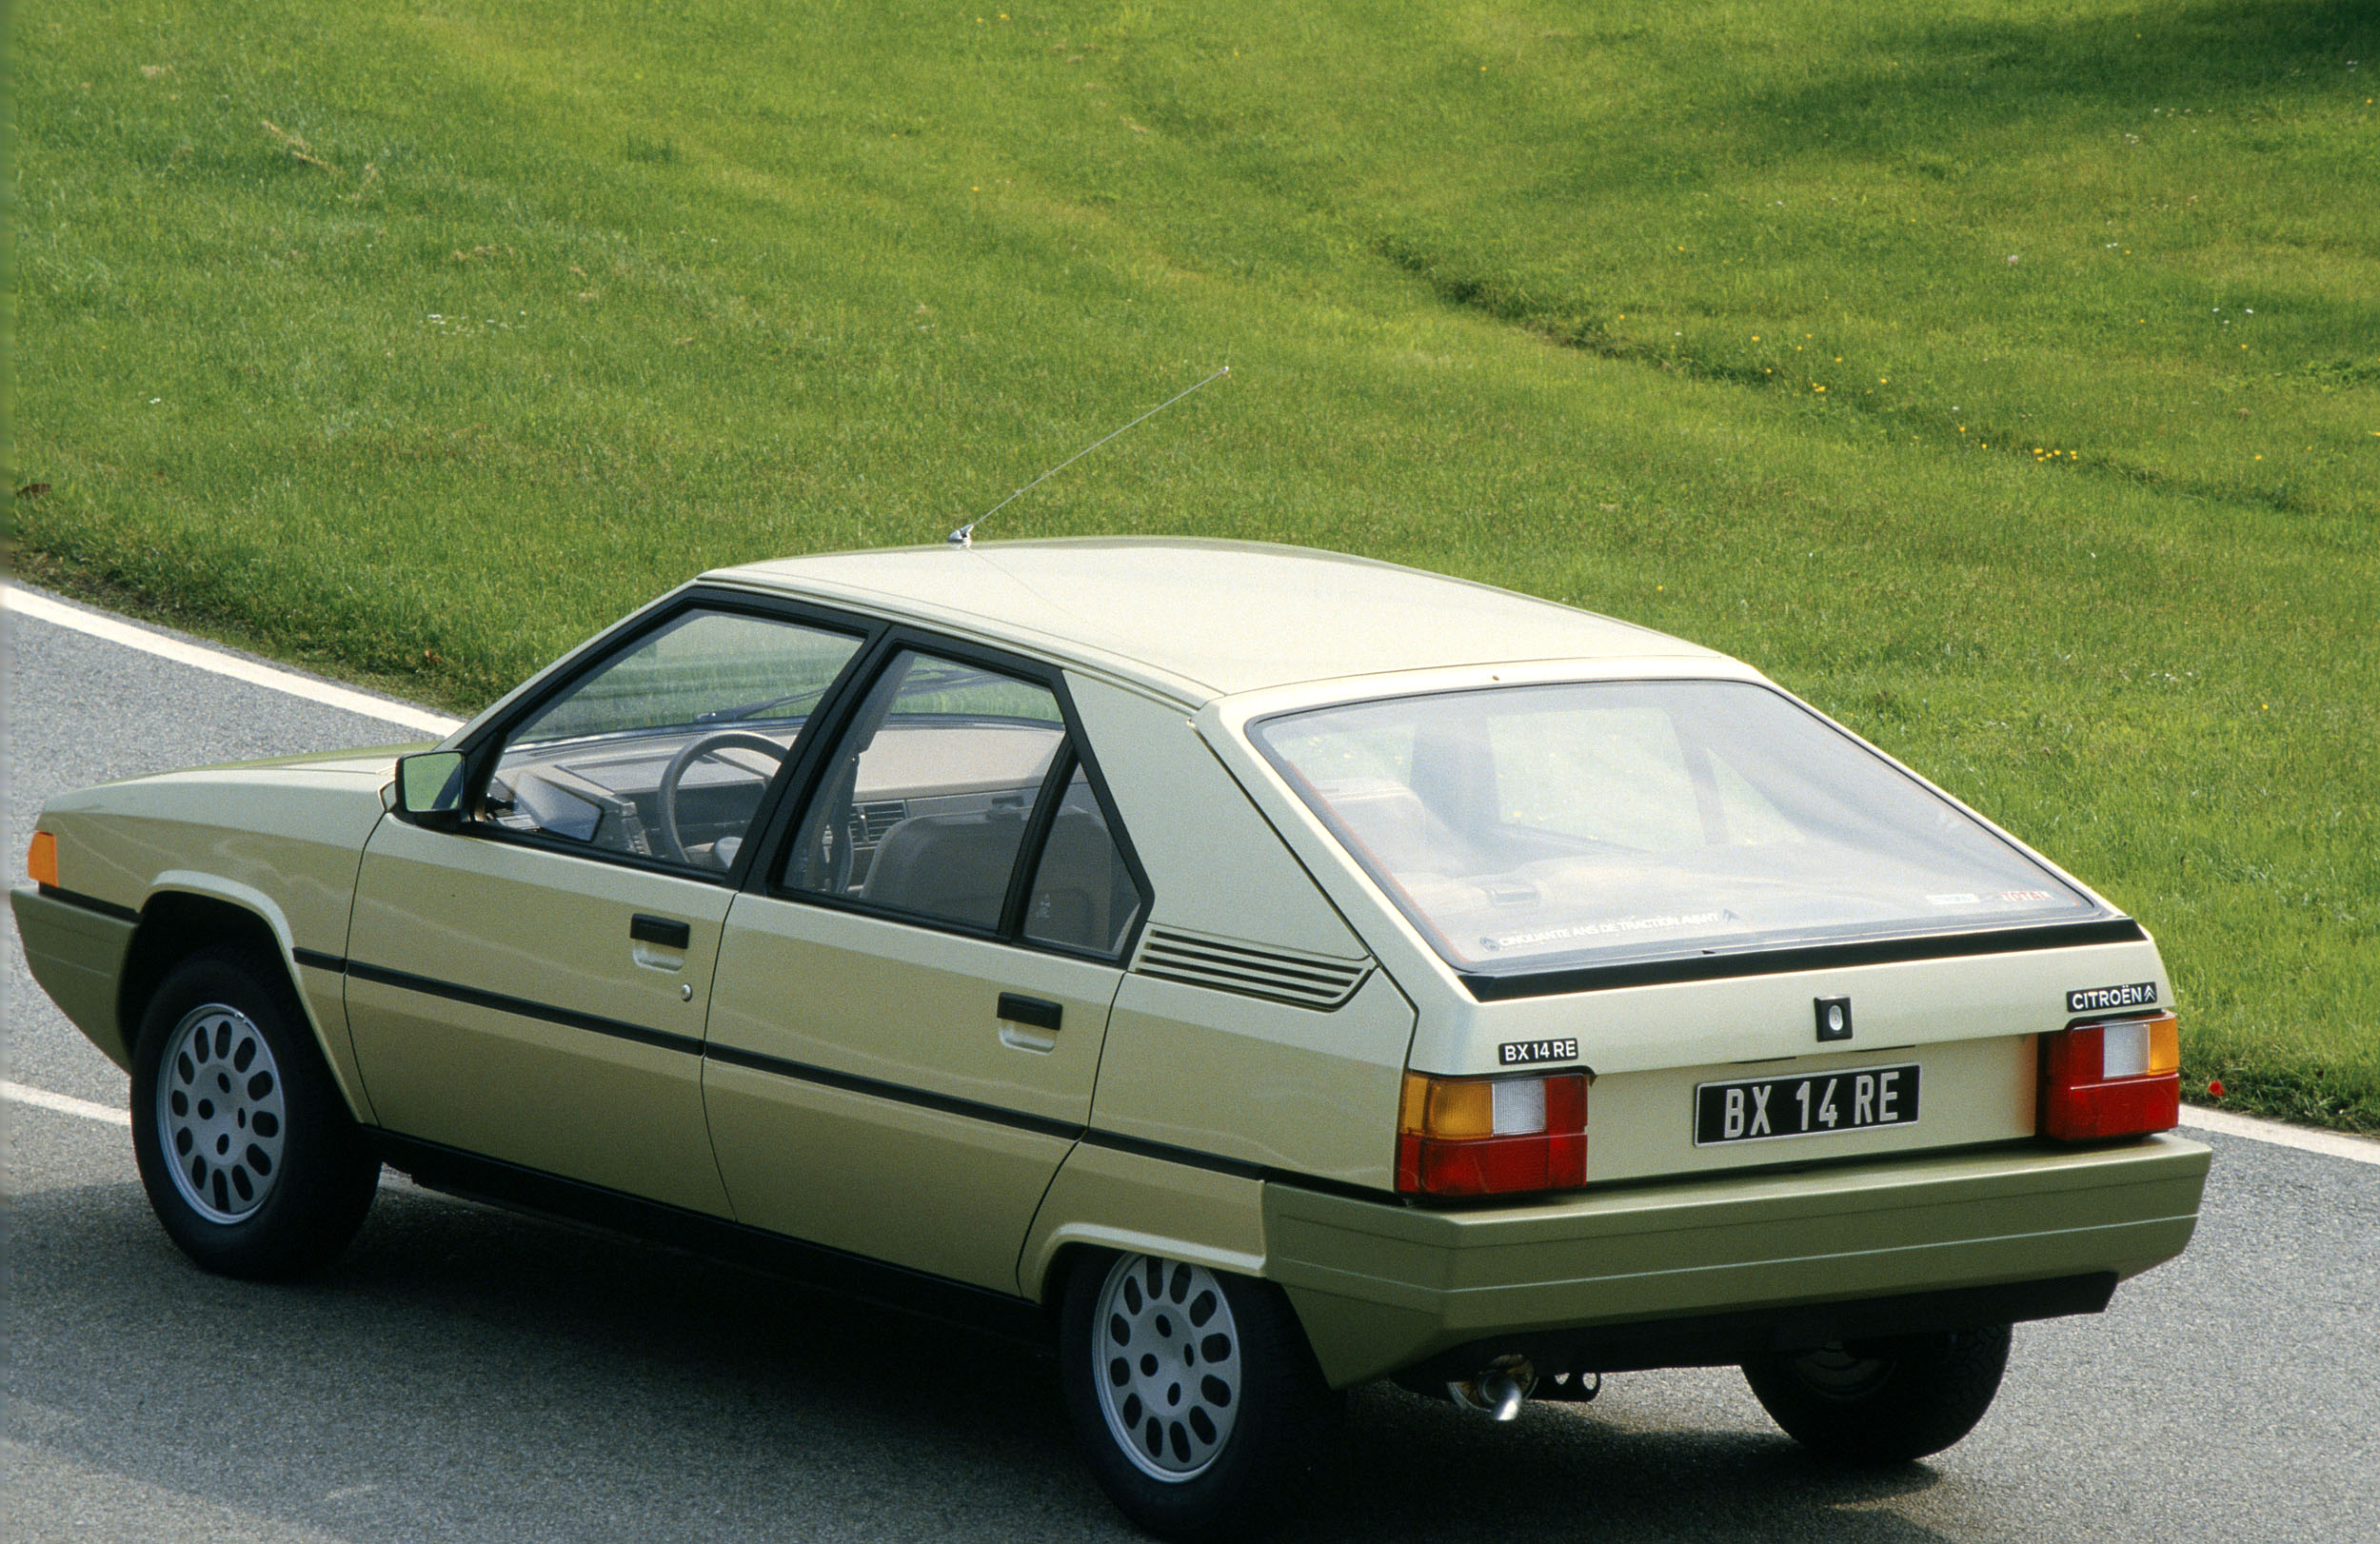 1983 citroen bx with Citroen Bx 1983 on Bx 12 likewise DAB 20  20Pagina 2013 besides 19104 likewise Bxphoto38 besides Bx 12.